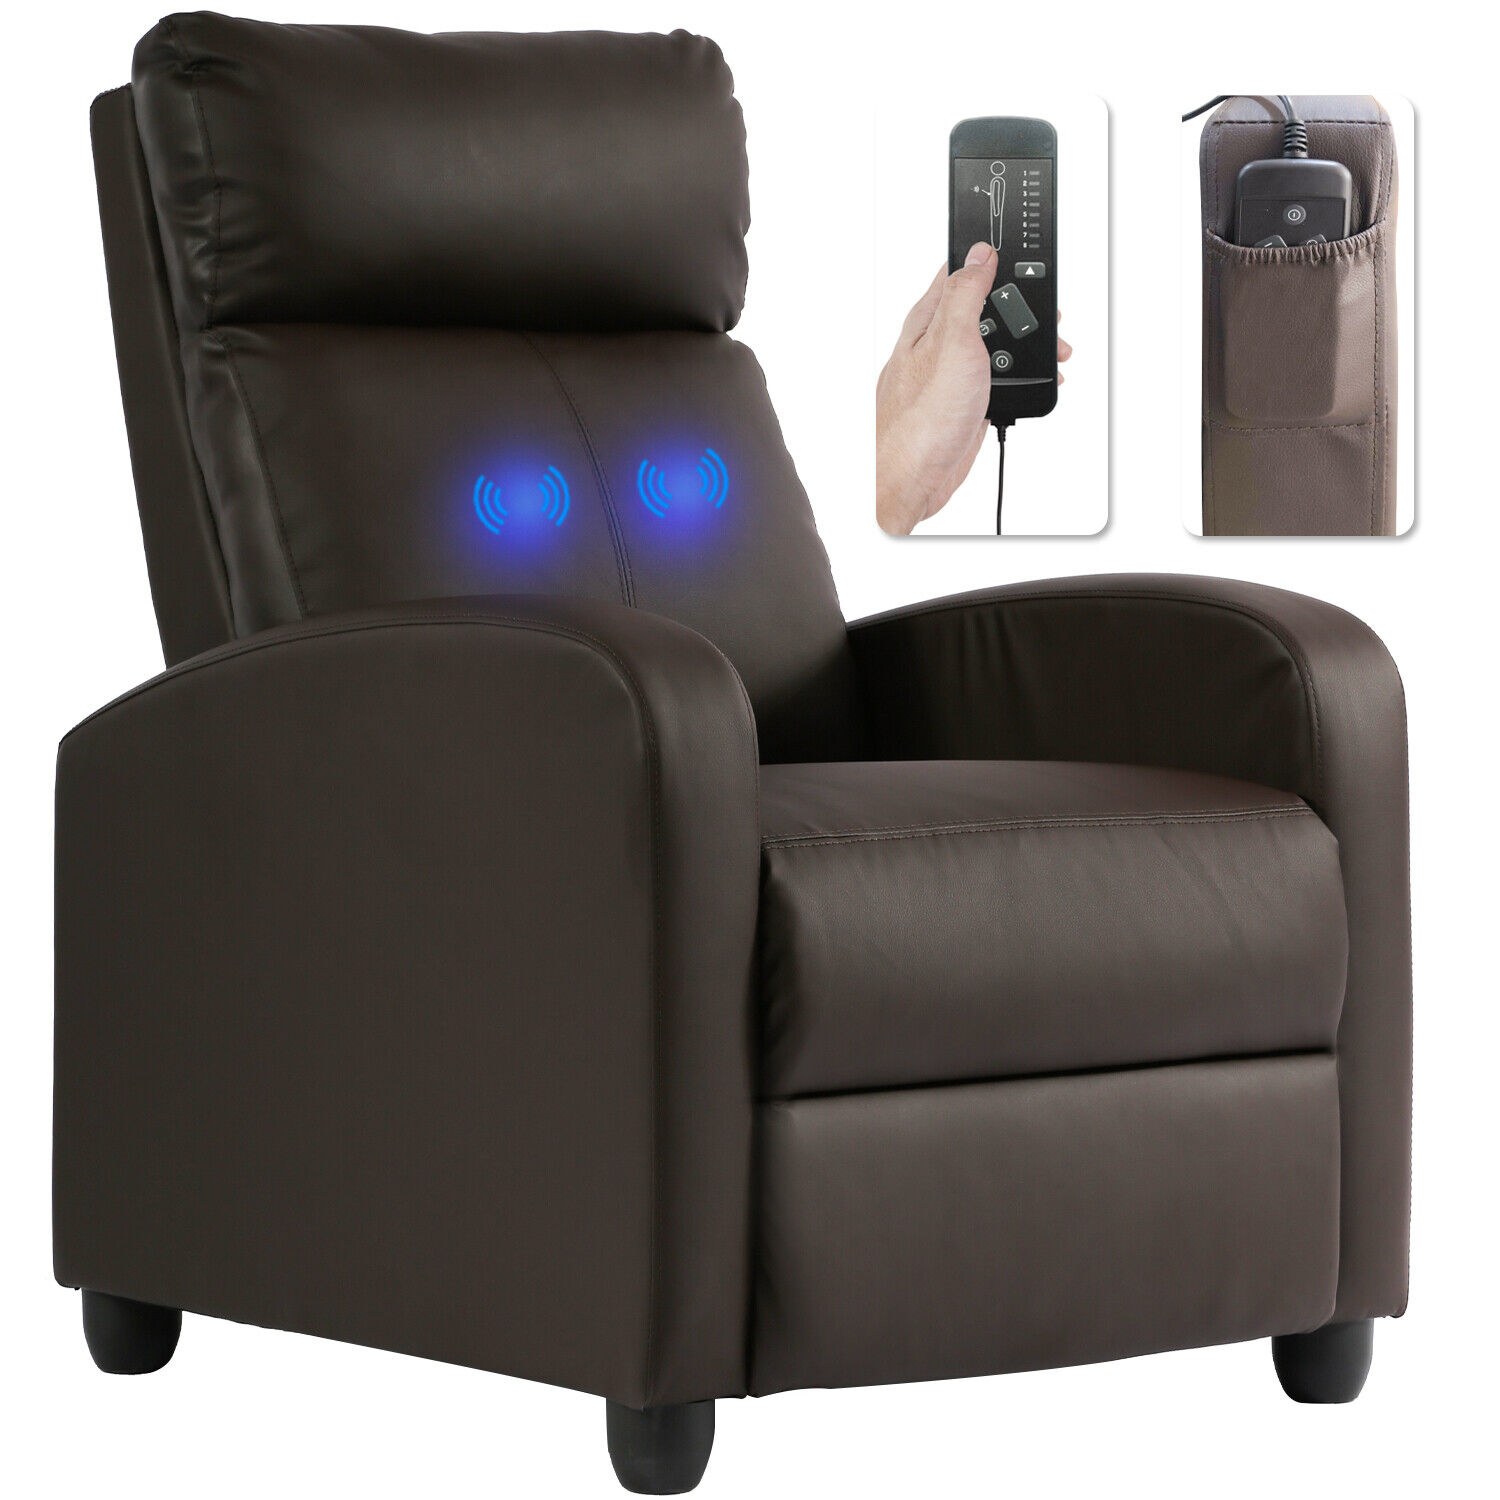 Recliner Chair Reading Chair Winback Single Sofa Home Theater Seating Modern Electric Massage Chairs